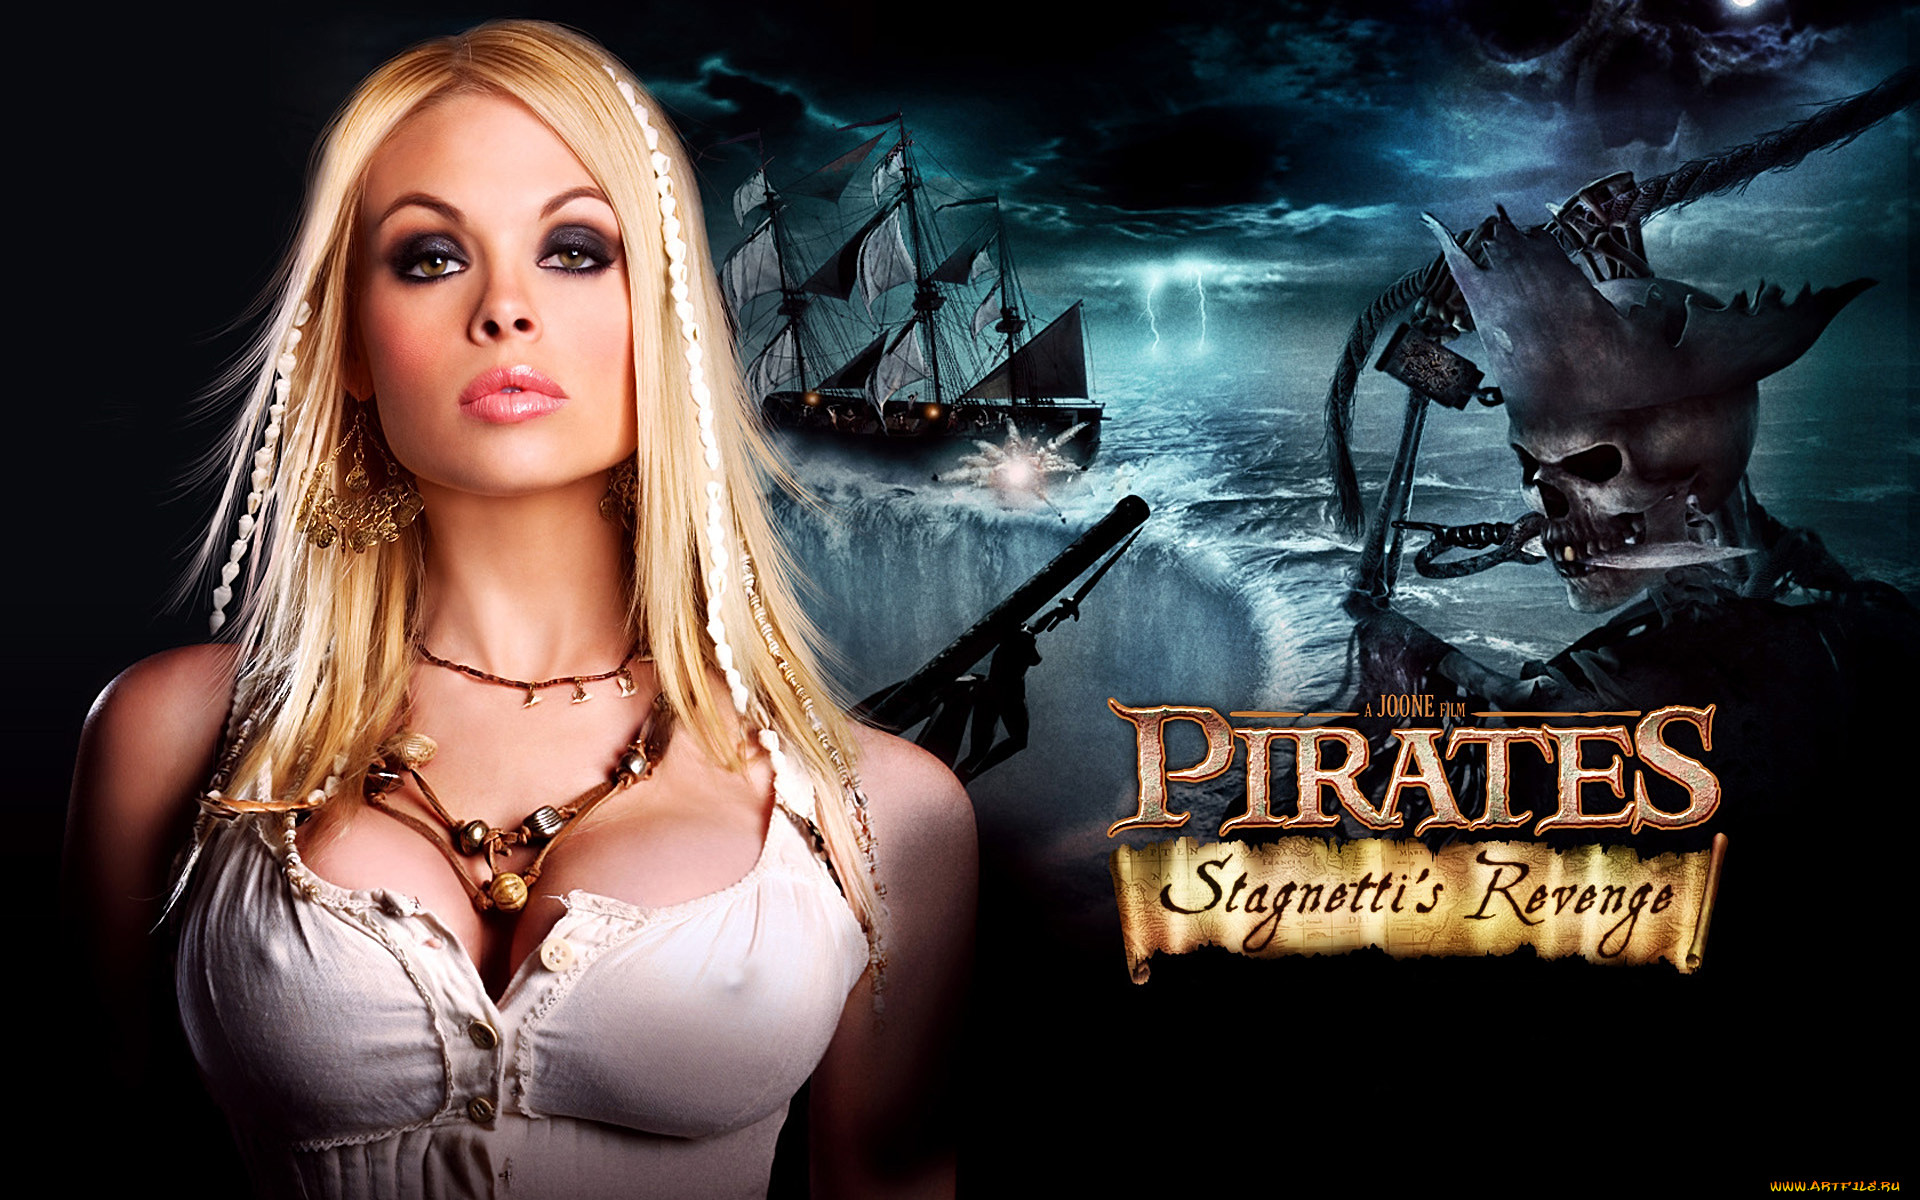 Pirate xxx movie 3gp sex clip